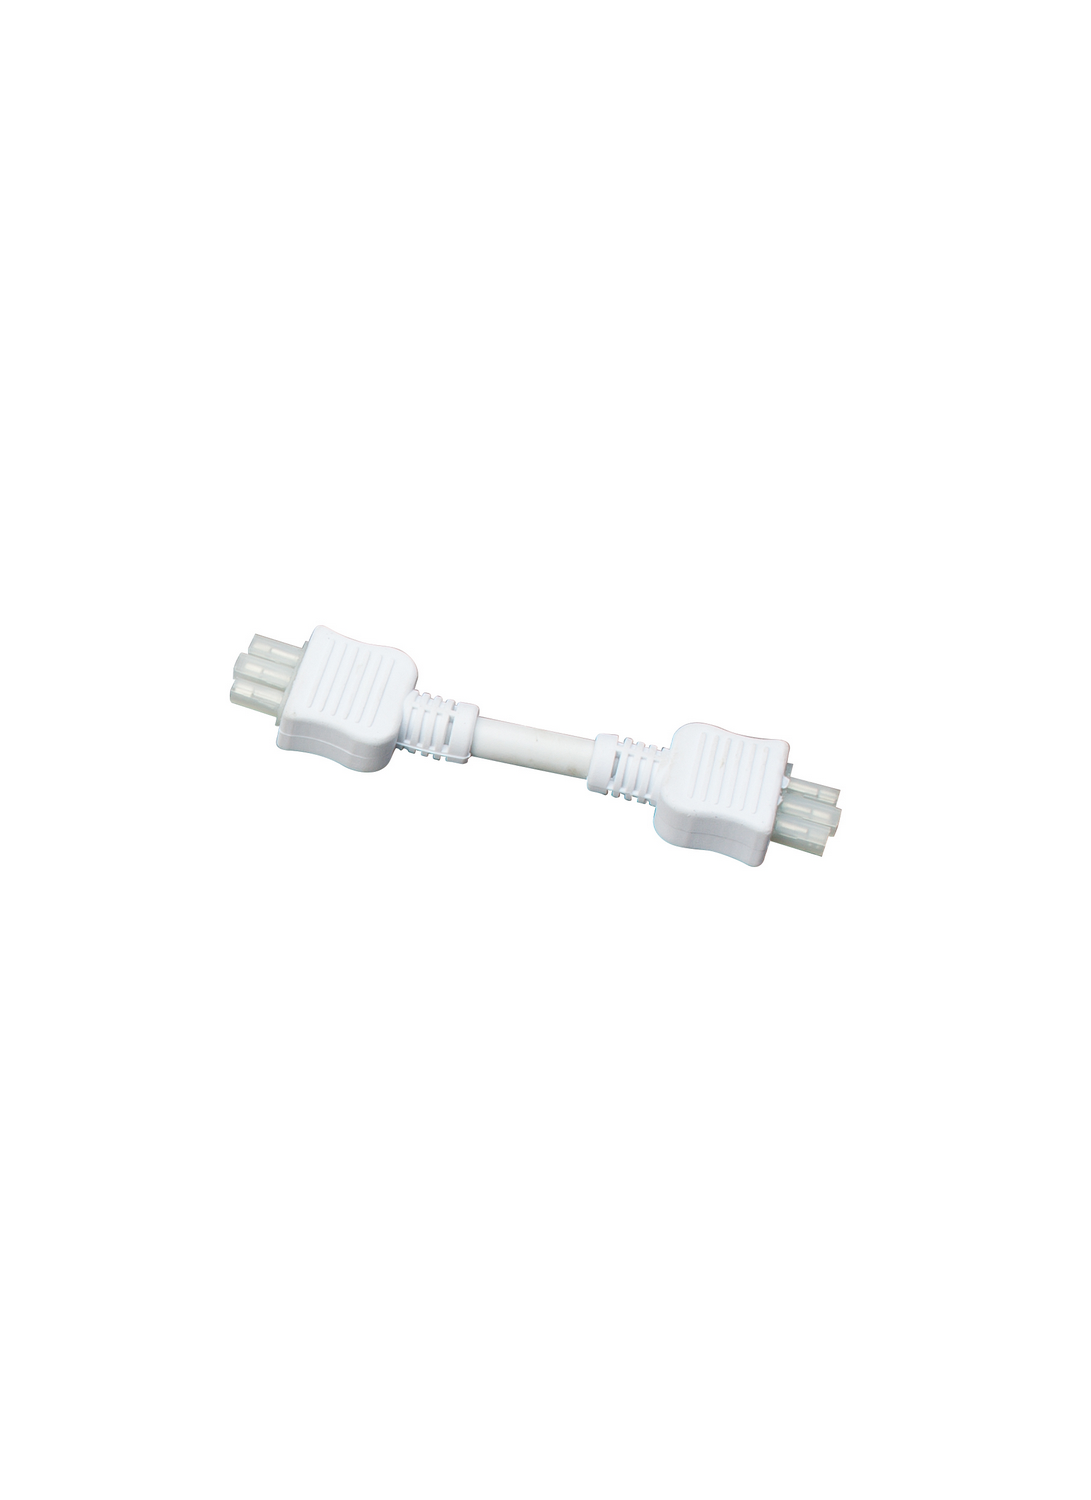 Connector Cord from the Connectors and Accessories collection by Seagull 95220S 15